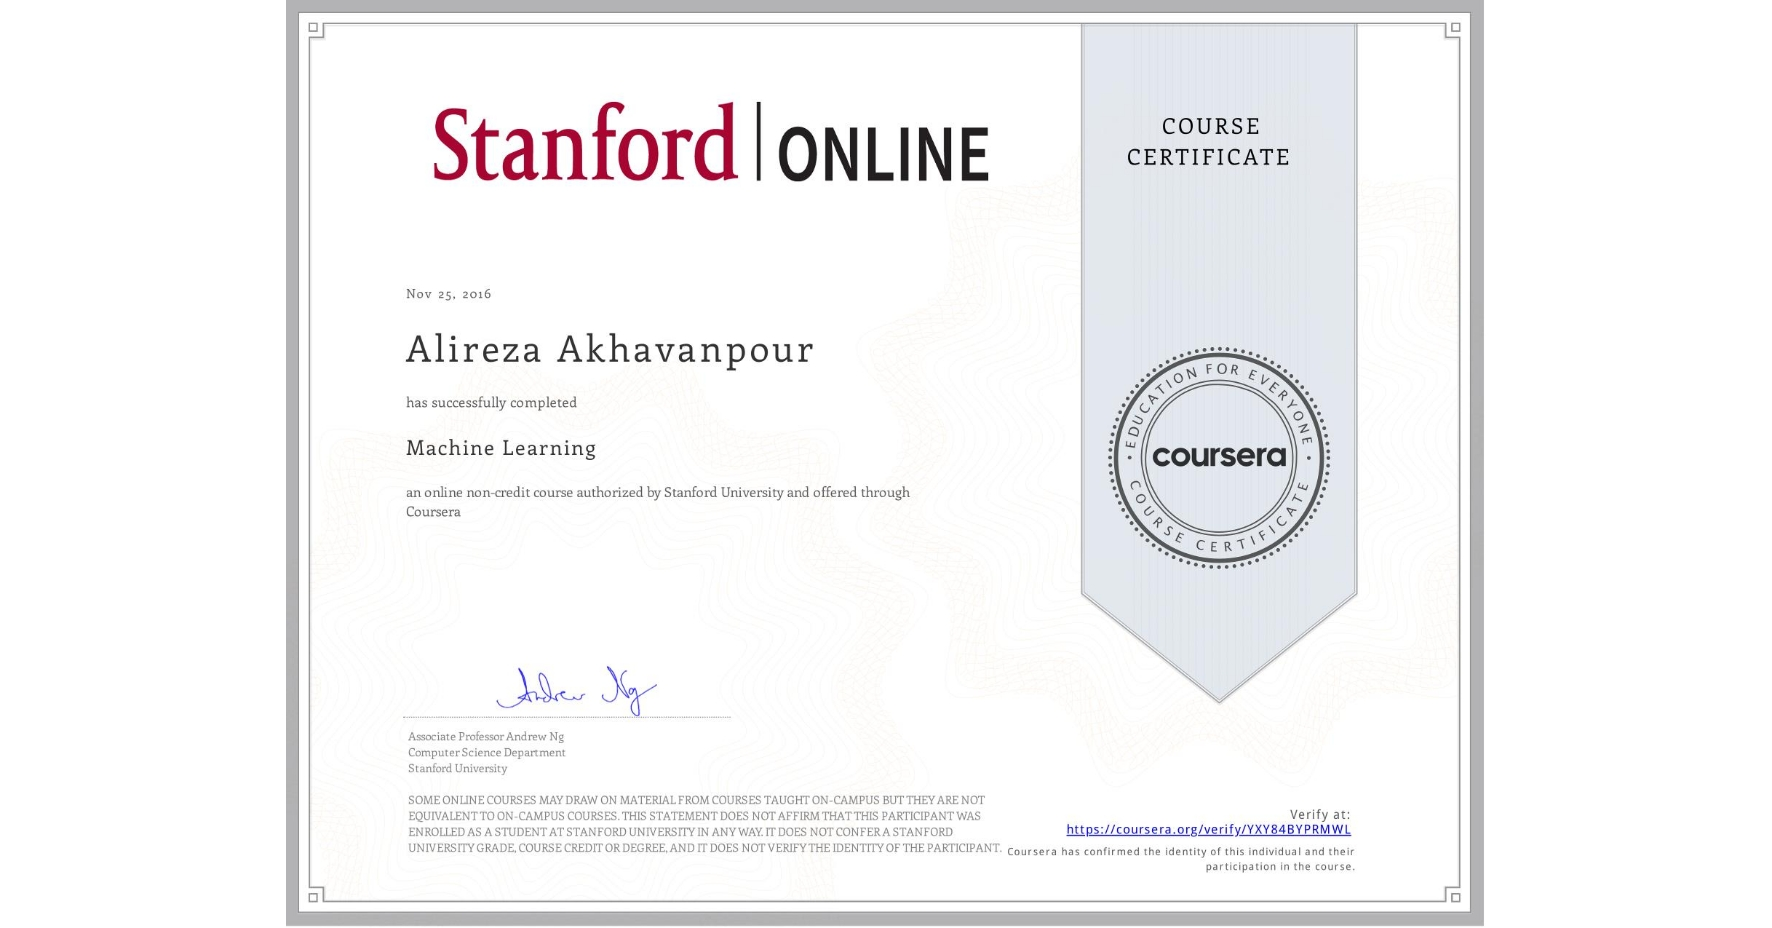 View certificate for Alireza Akhavanpour, Machine Learning, an online non-credit course authorized by Stanford University and offered through Coursera